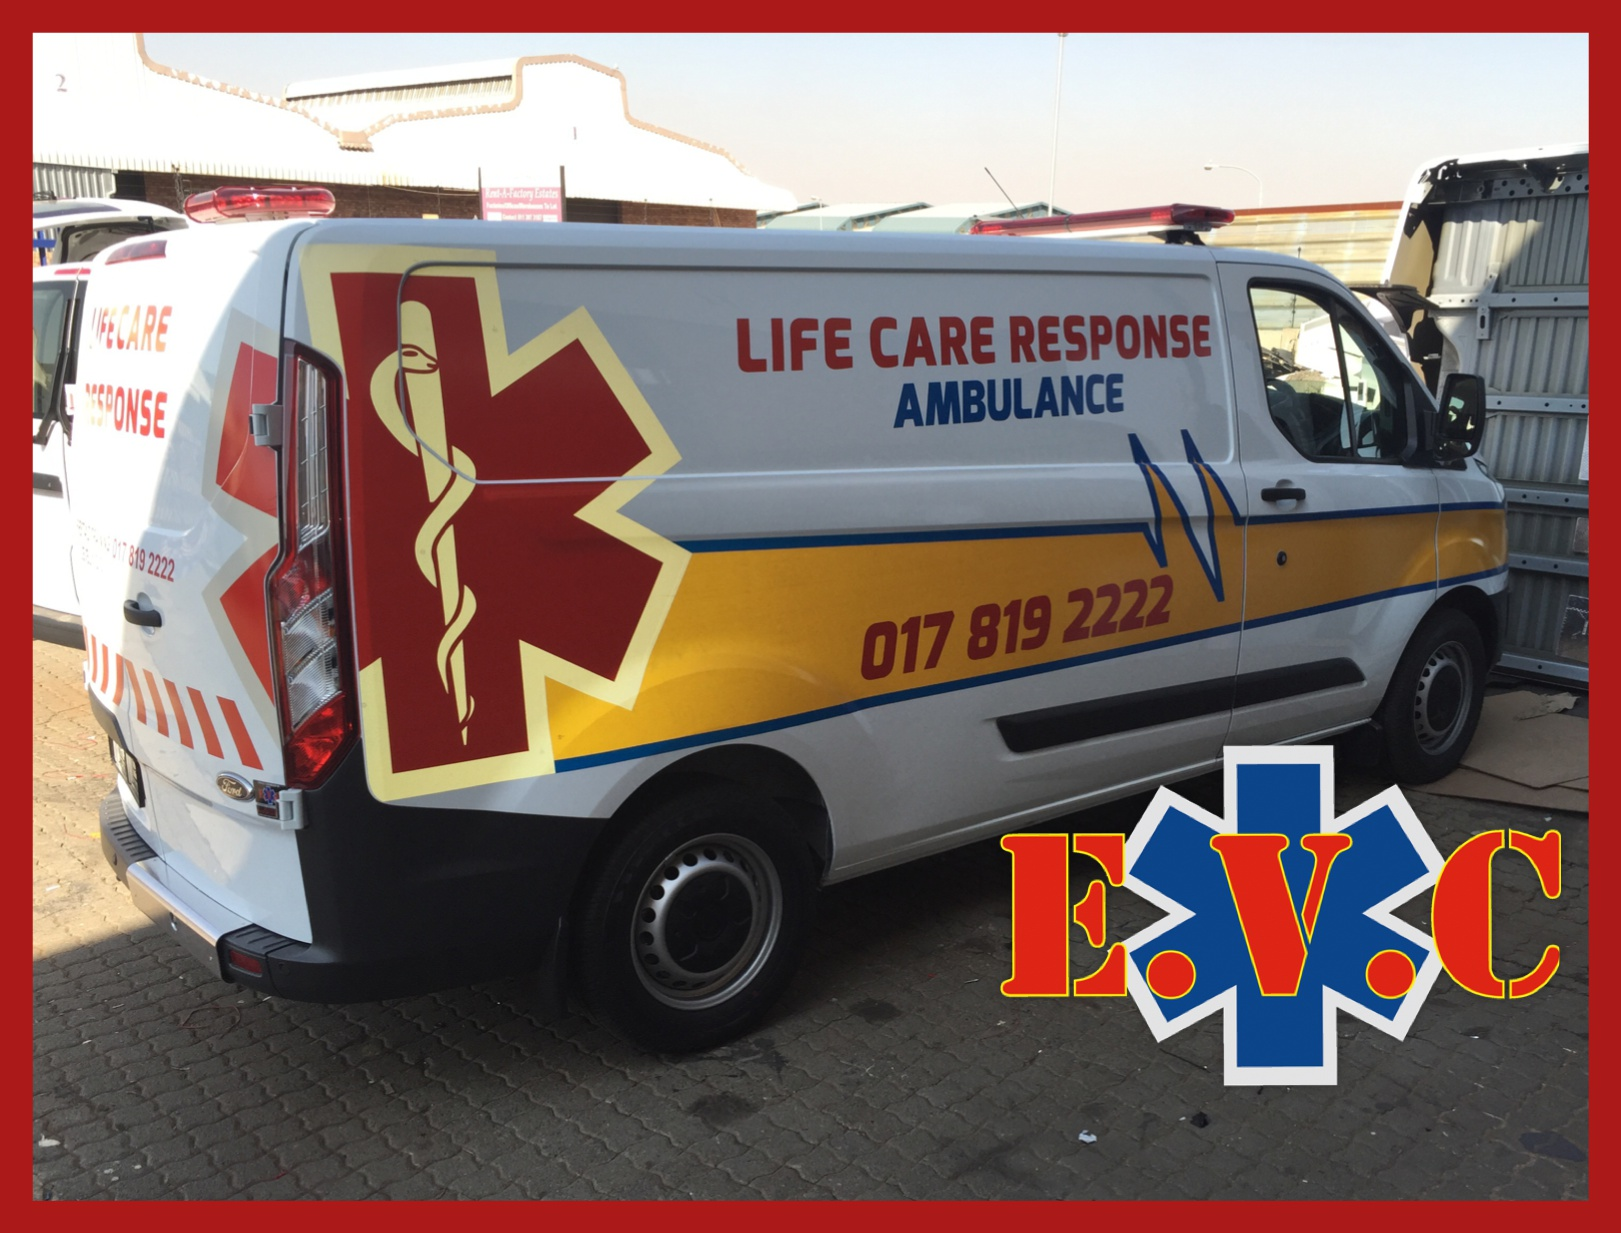 New Ambulance for Life Care Response